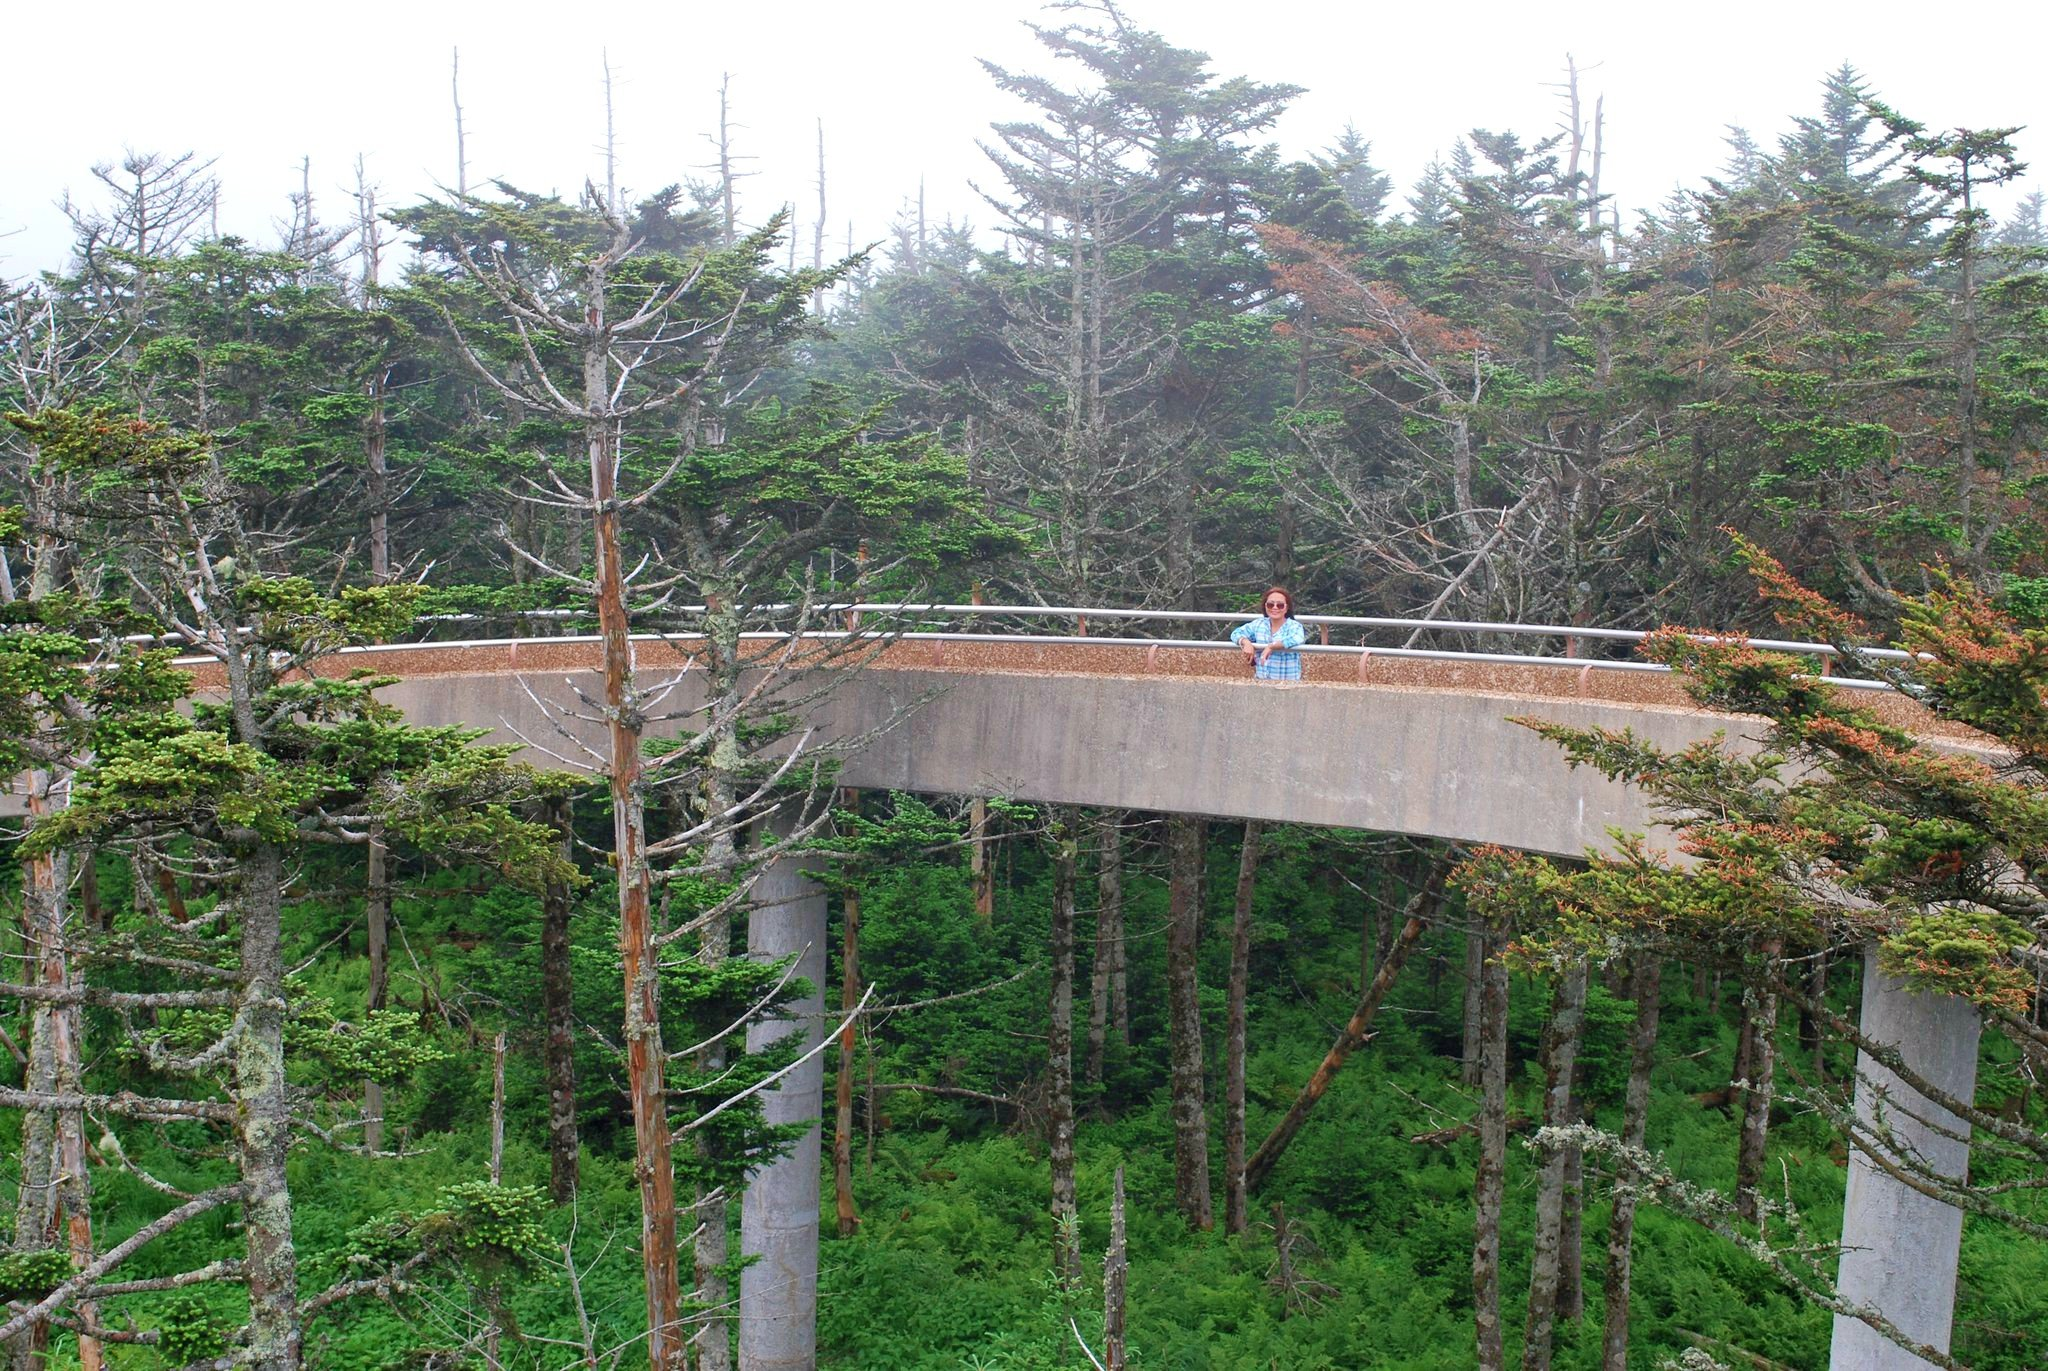 Enjoying the mountain views from the tp of the Clingmans Dome in Pigeon Forge, TN